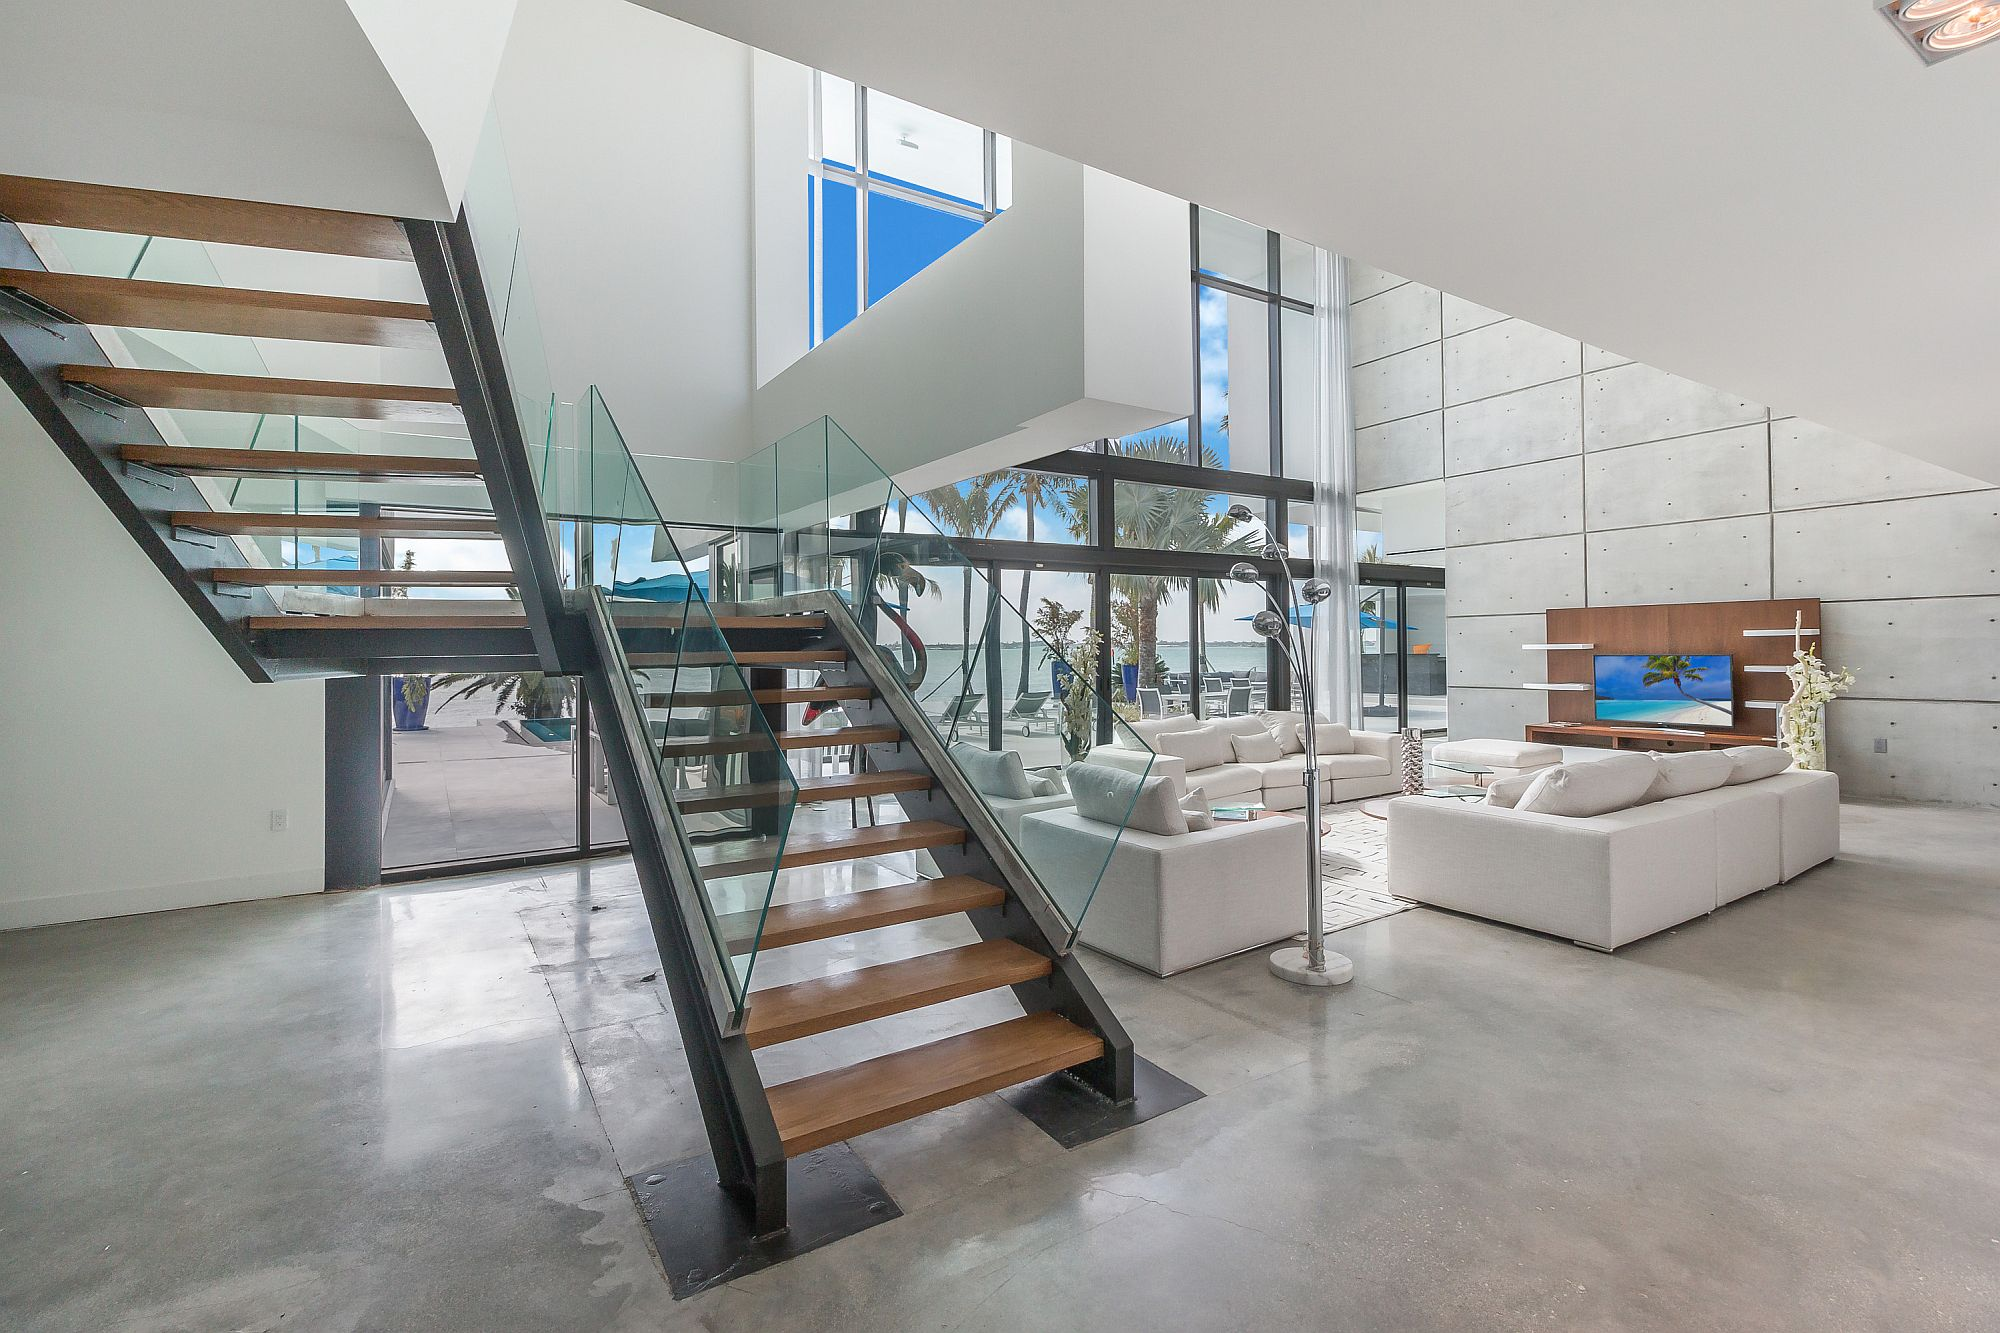 Fabulous staircase connecting different levels of the contemporary Miami home